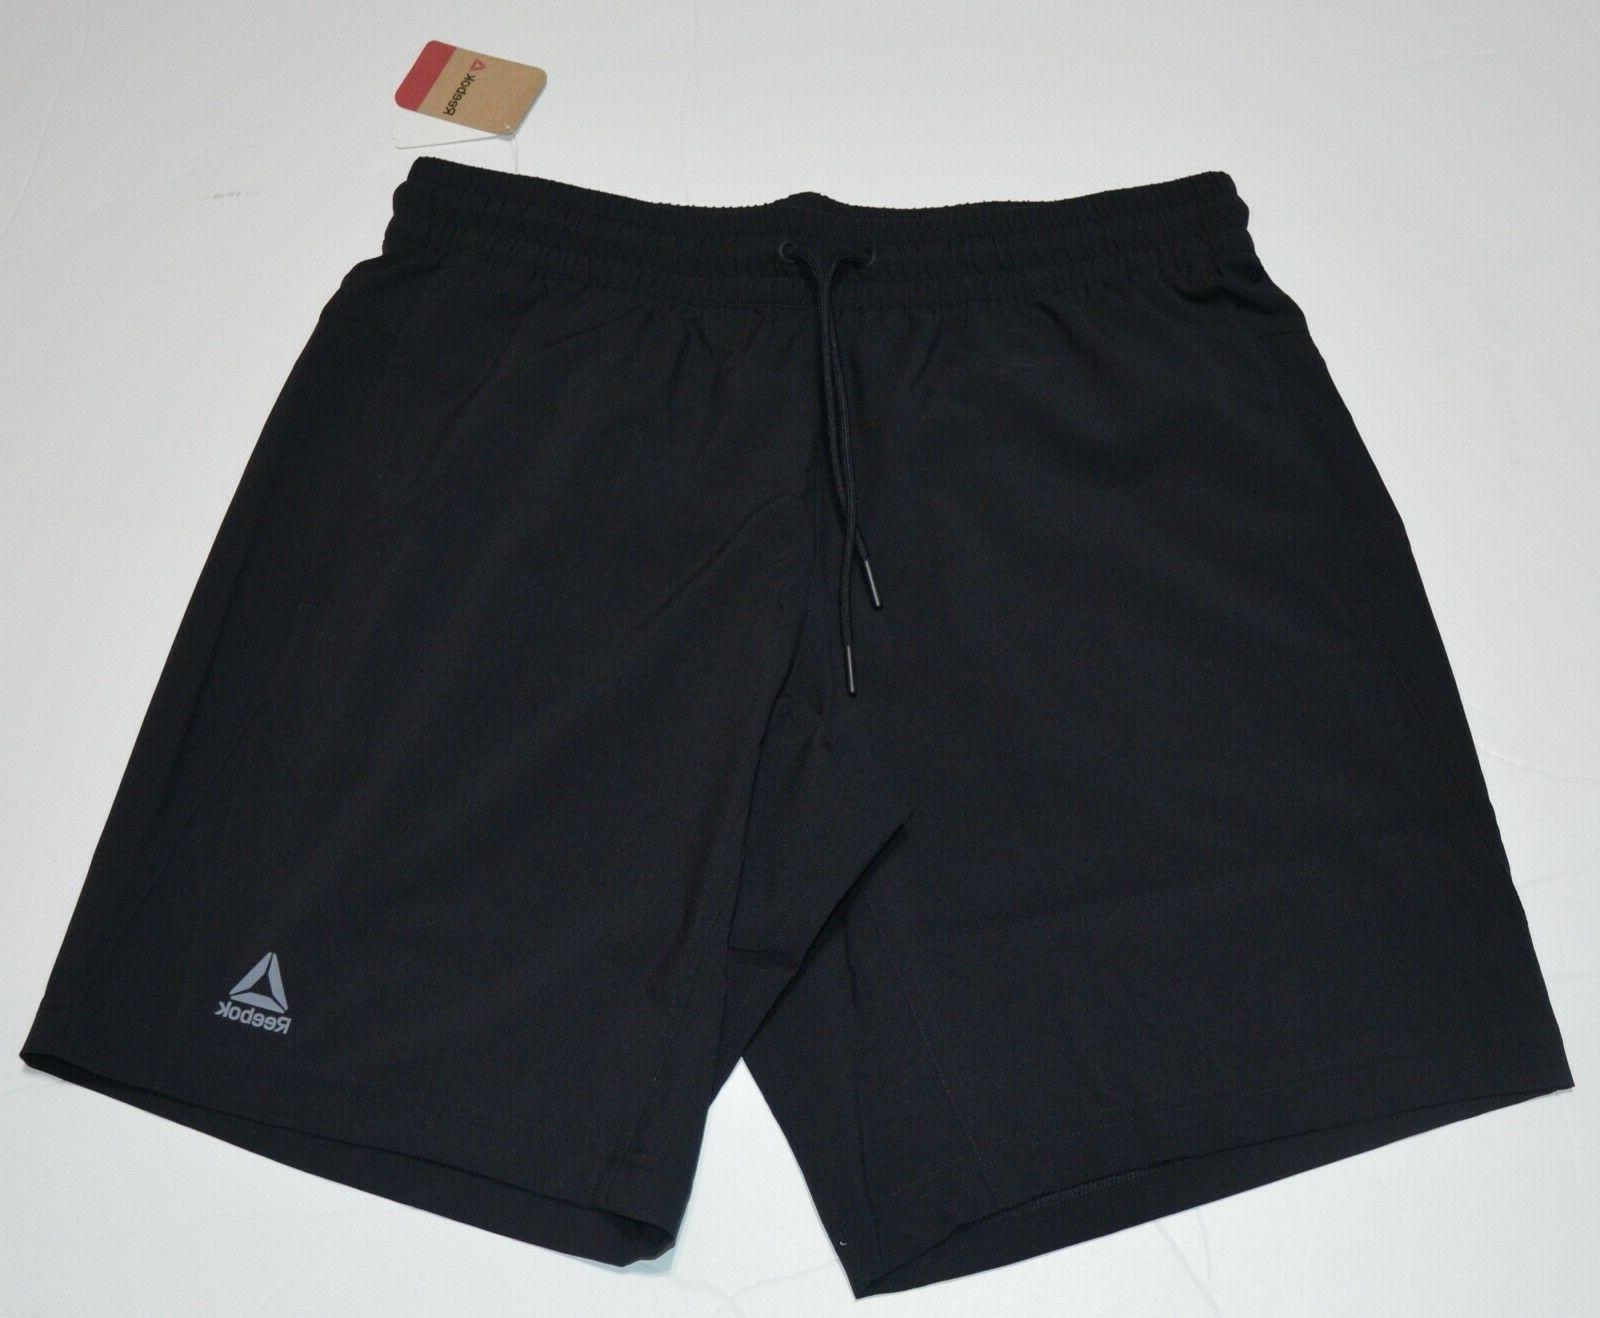 wor woven men s black shorts new